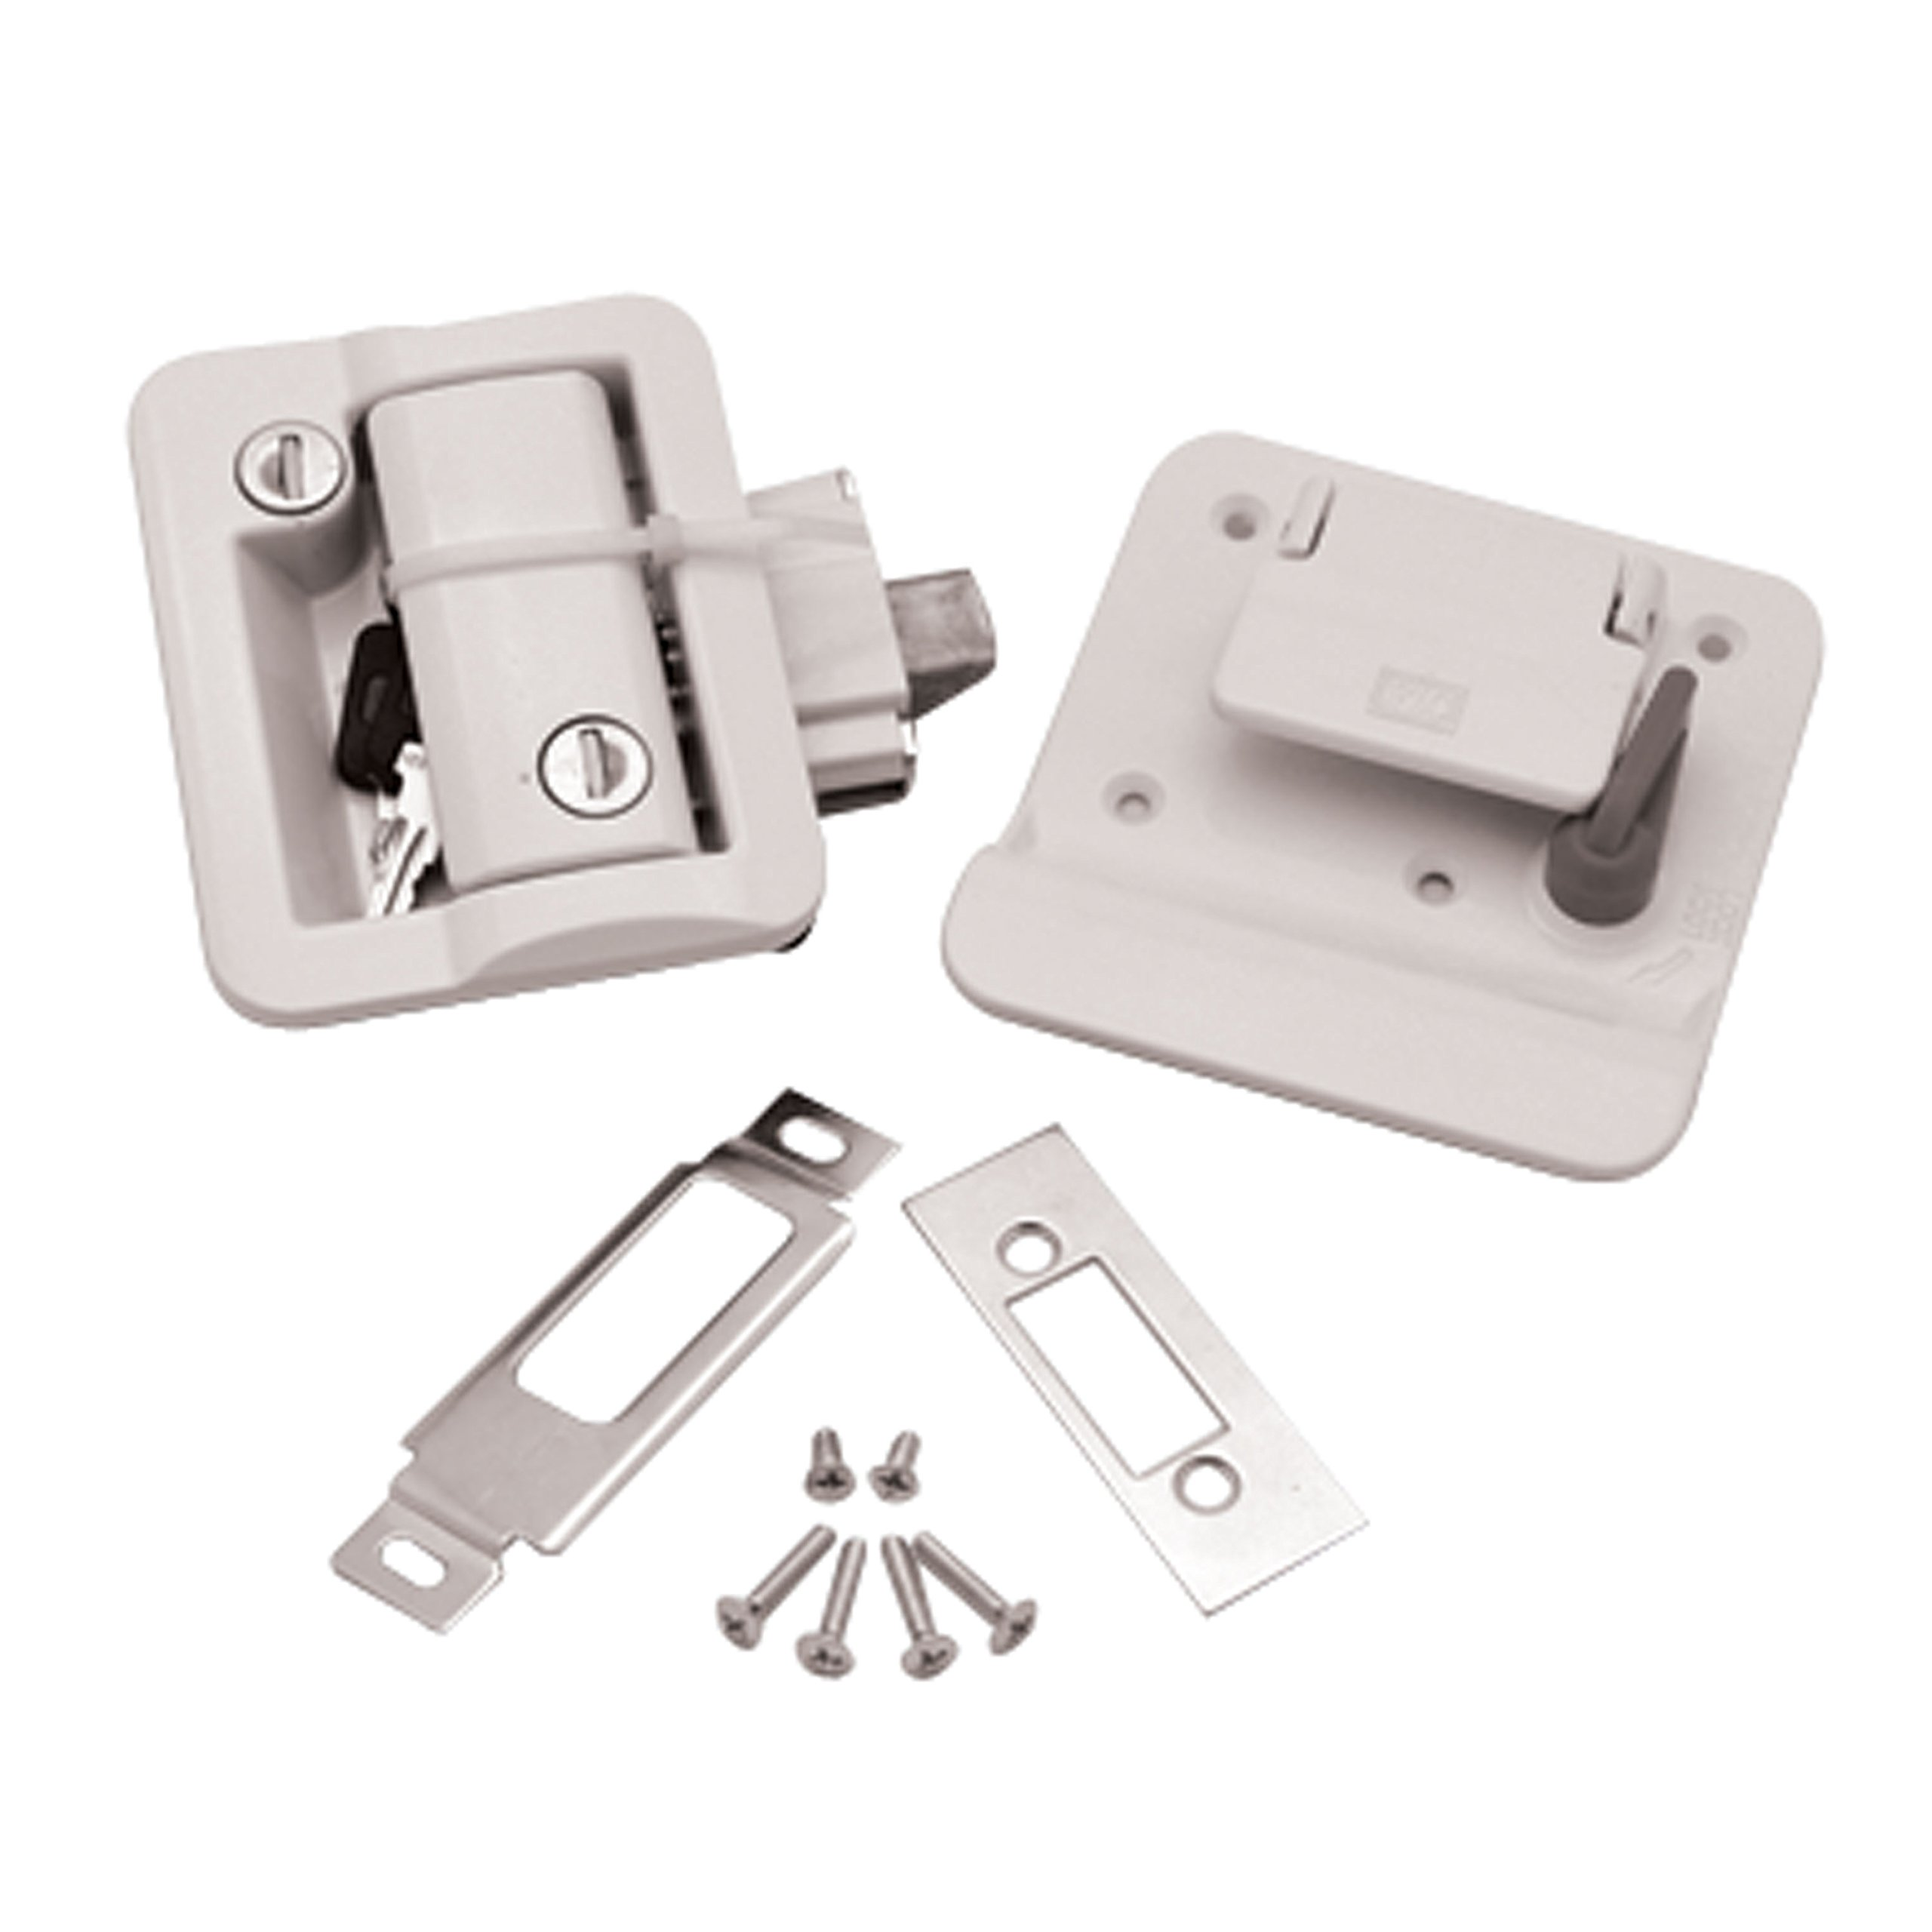 Fastec Industrial 43610-09 FIC Travel Trailer Lock with Deadbolt - White